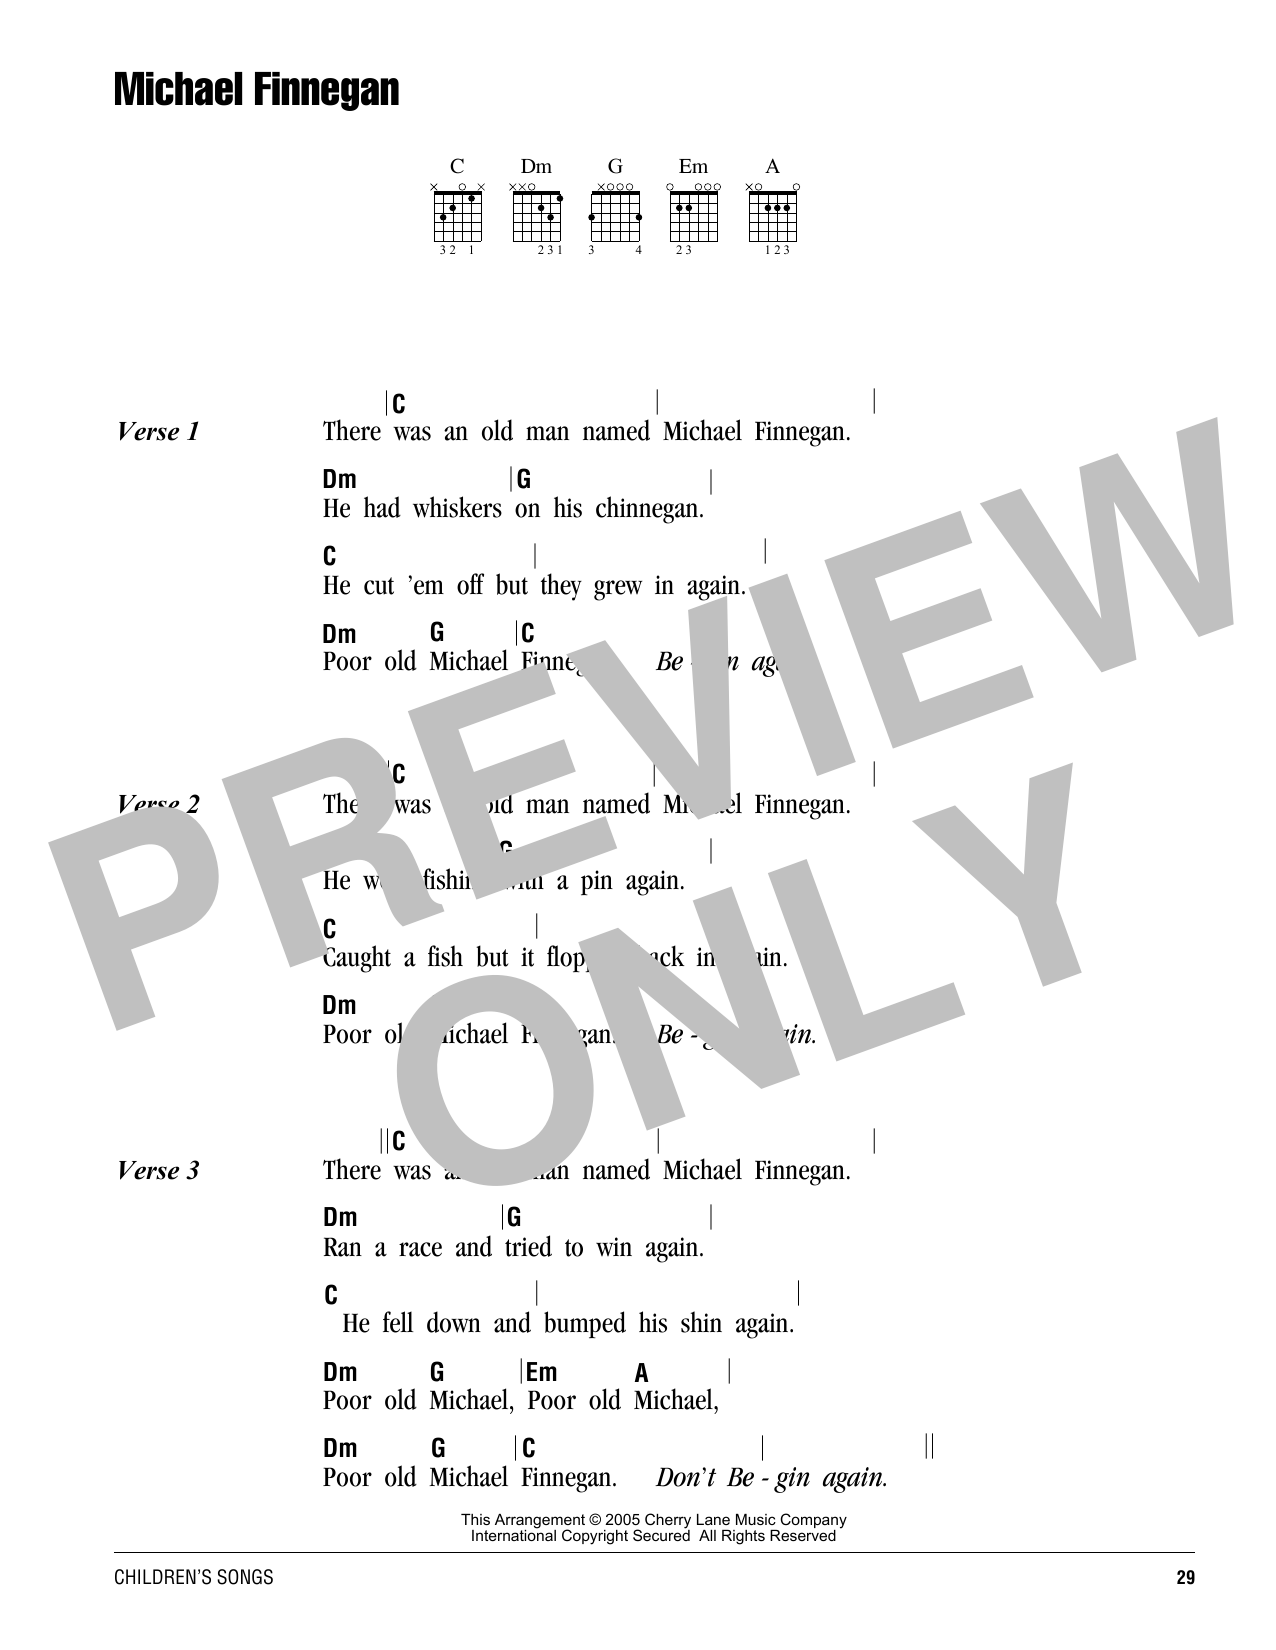 Michael Finnegan sheet music by Traditional (Lyrics